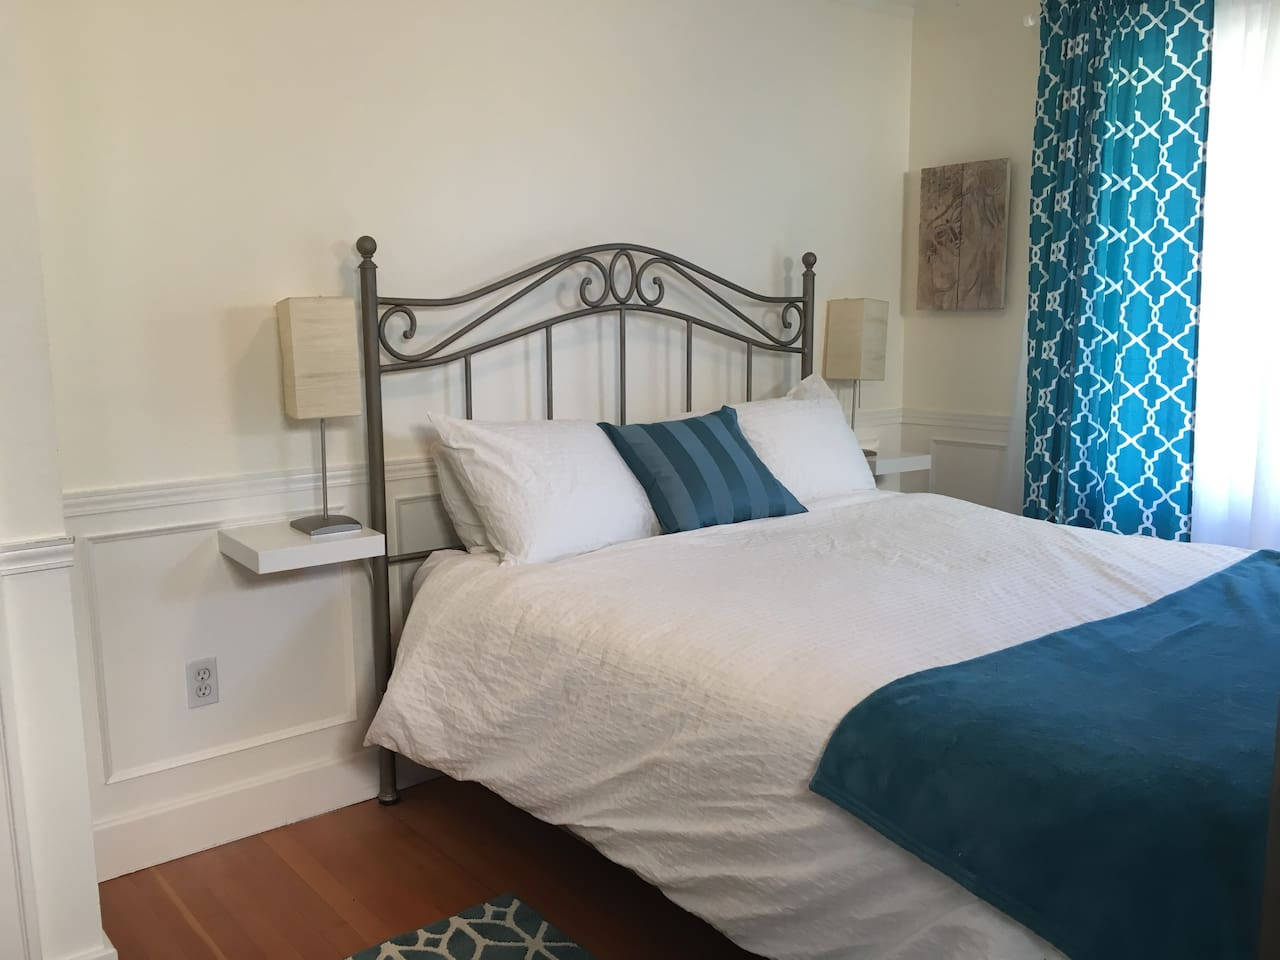 Super comfy queen bed for a restful sleep